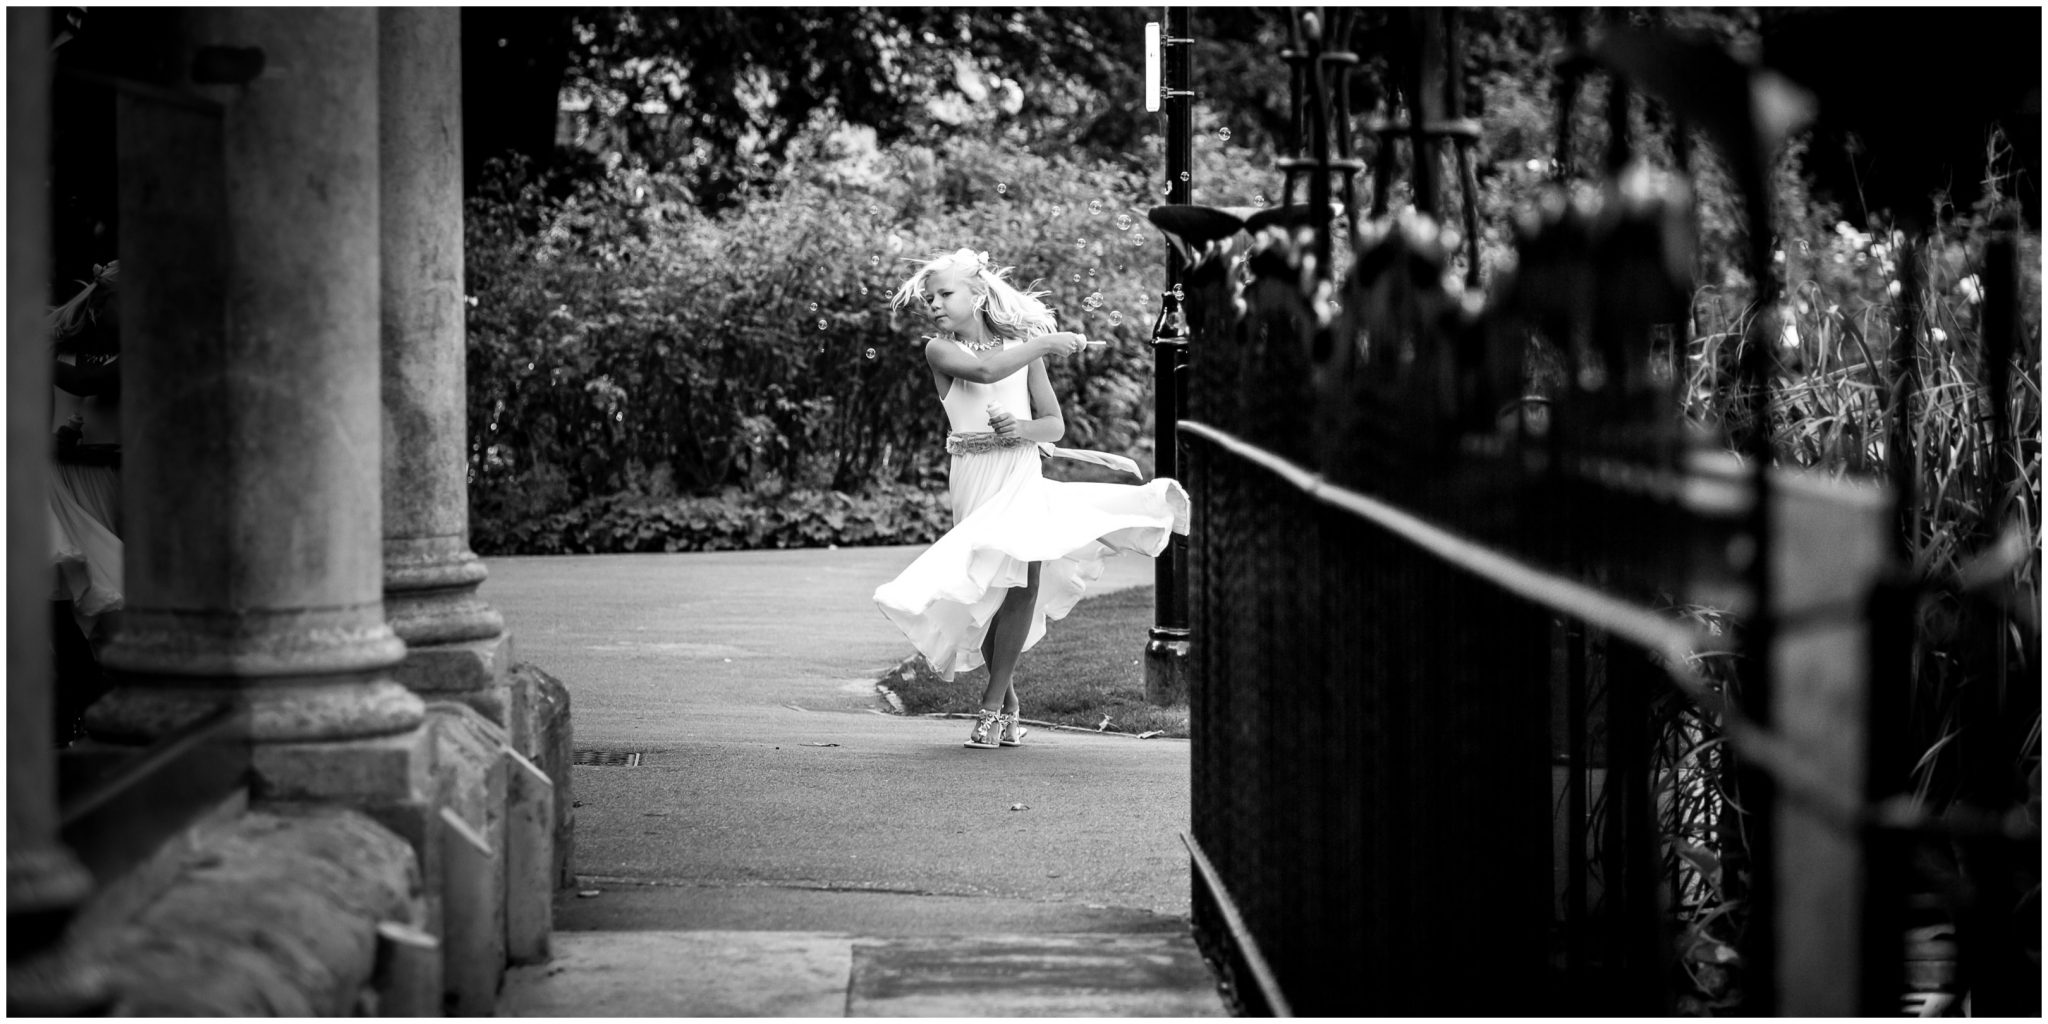 The bride's daughter and flower girl dancing in the gardens